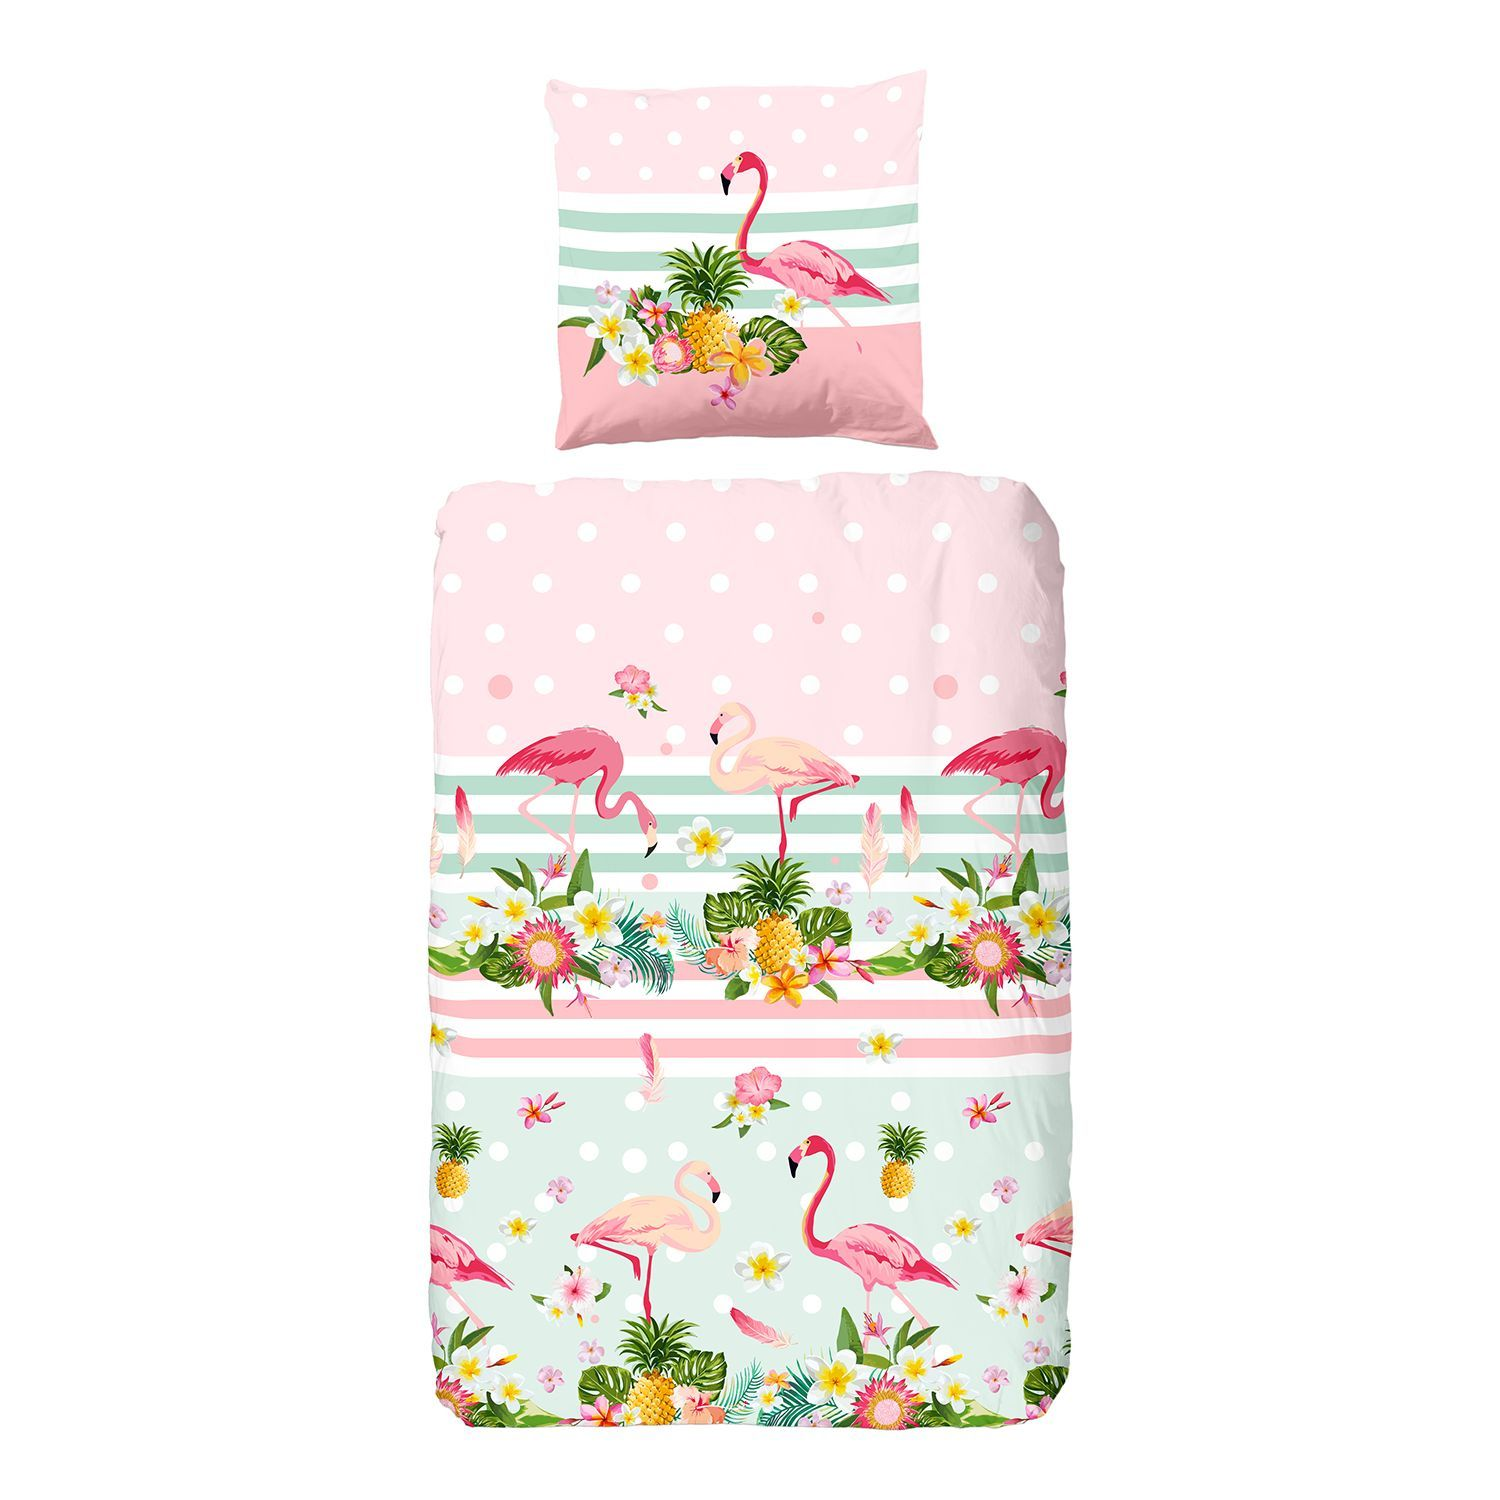 Flamingo Bettwäsche Bettwaesche Flamingo In 2019 Products Flamingo Flamingo Decor